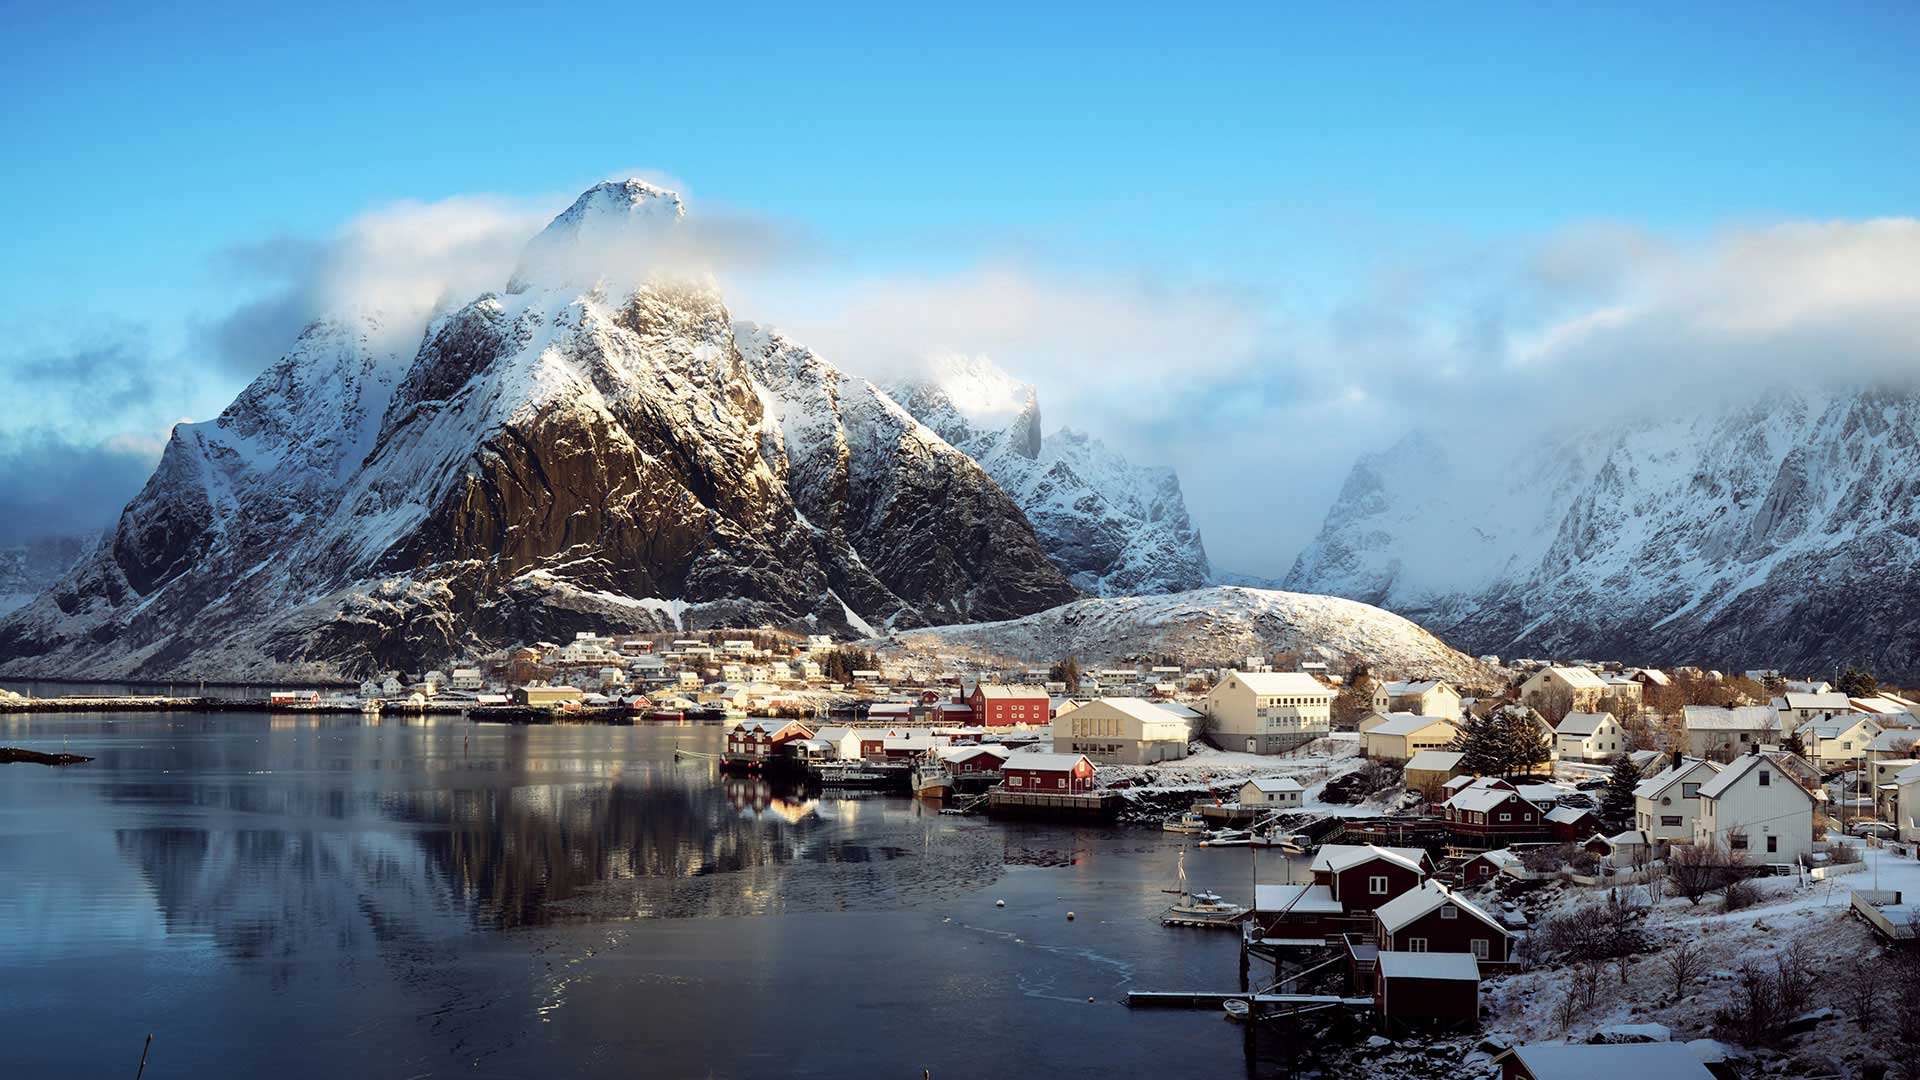 The village of Reine in Norway's Lofoten Islands